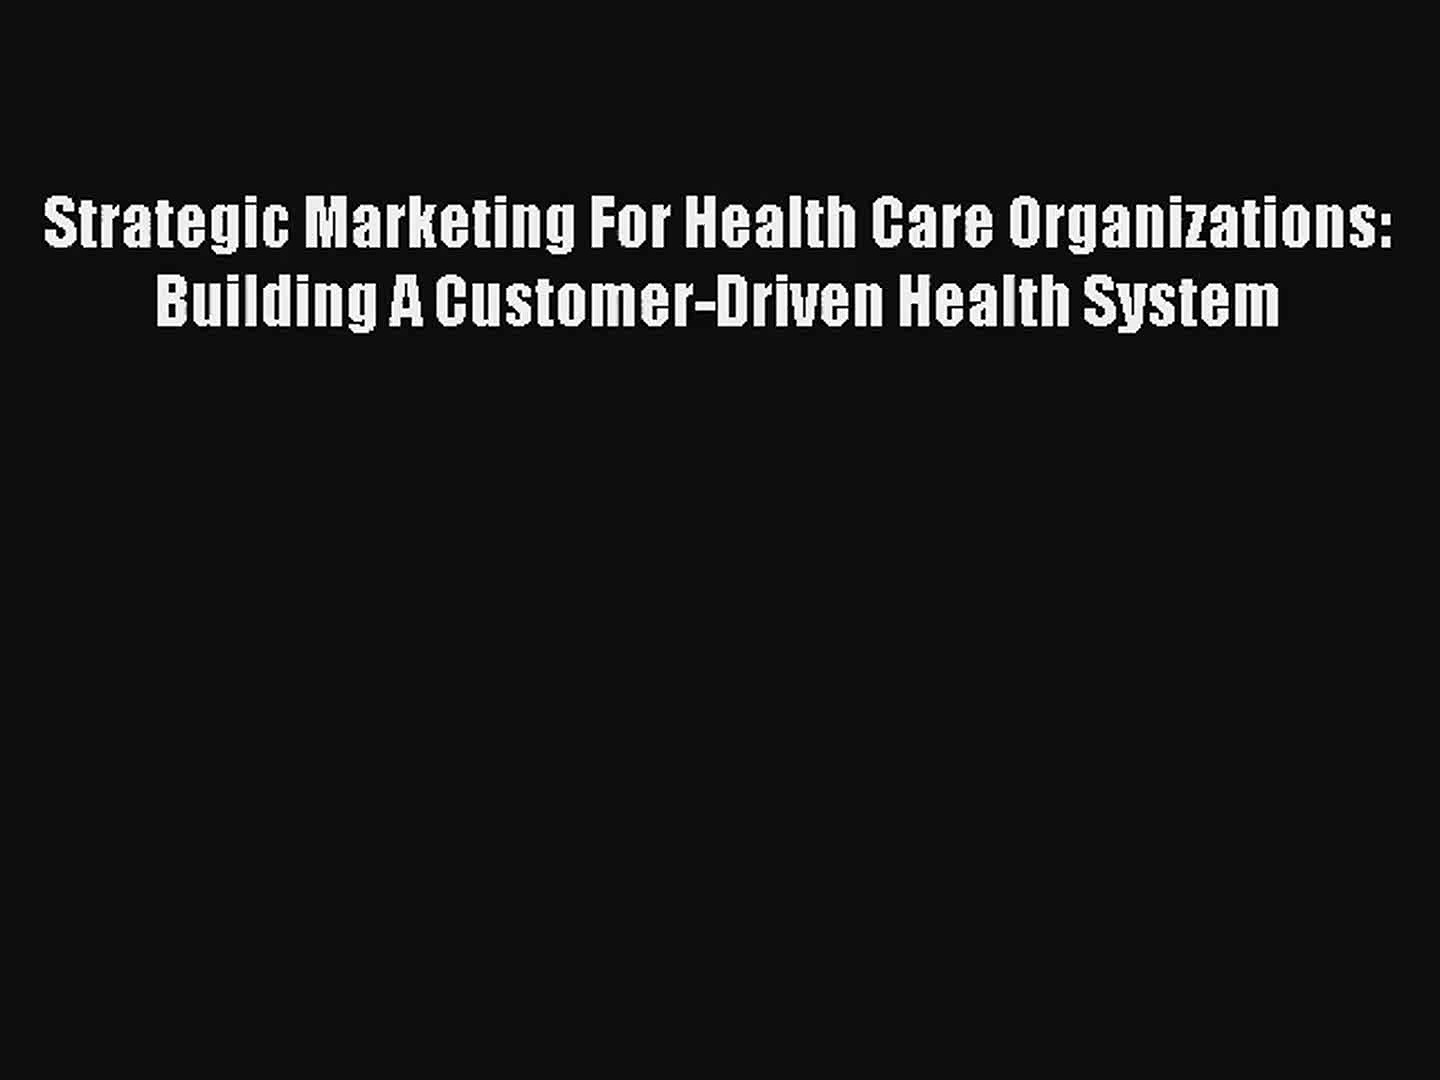 Read Strategic Marketing For Health Care Organizations: Building A Customer-Driven Health System#